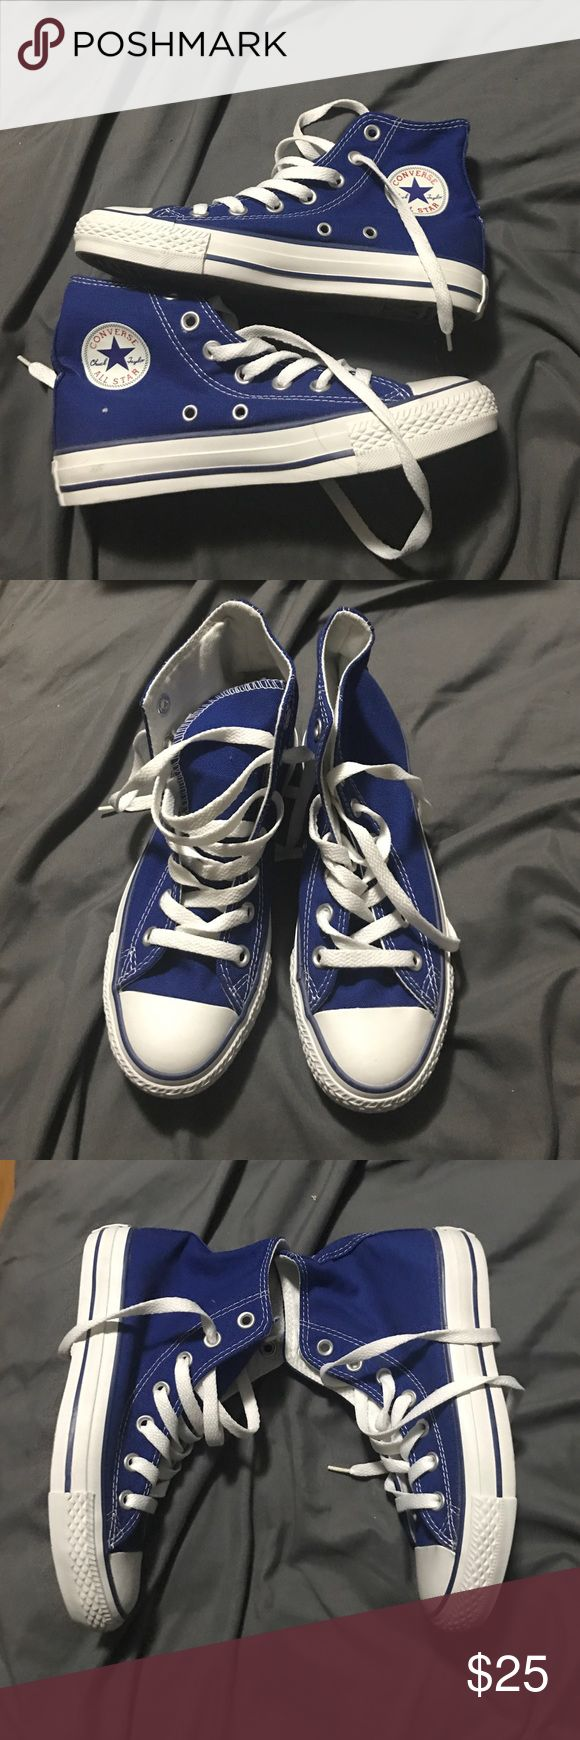 Blue all star converse high tops Never worn size 3 men 5 women blue converse high tops Converse Shoes Sneakers